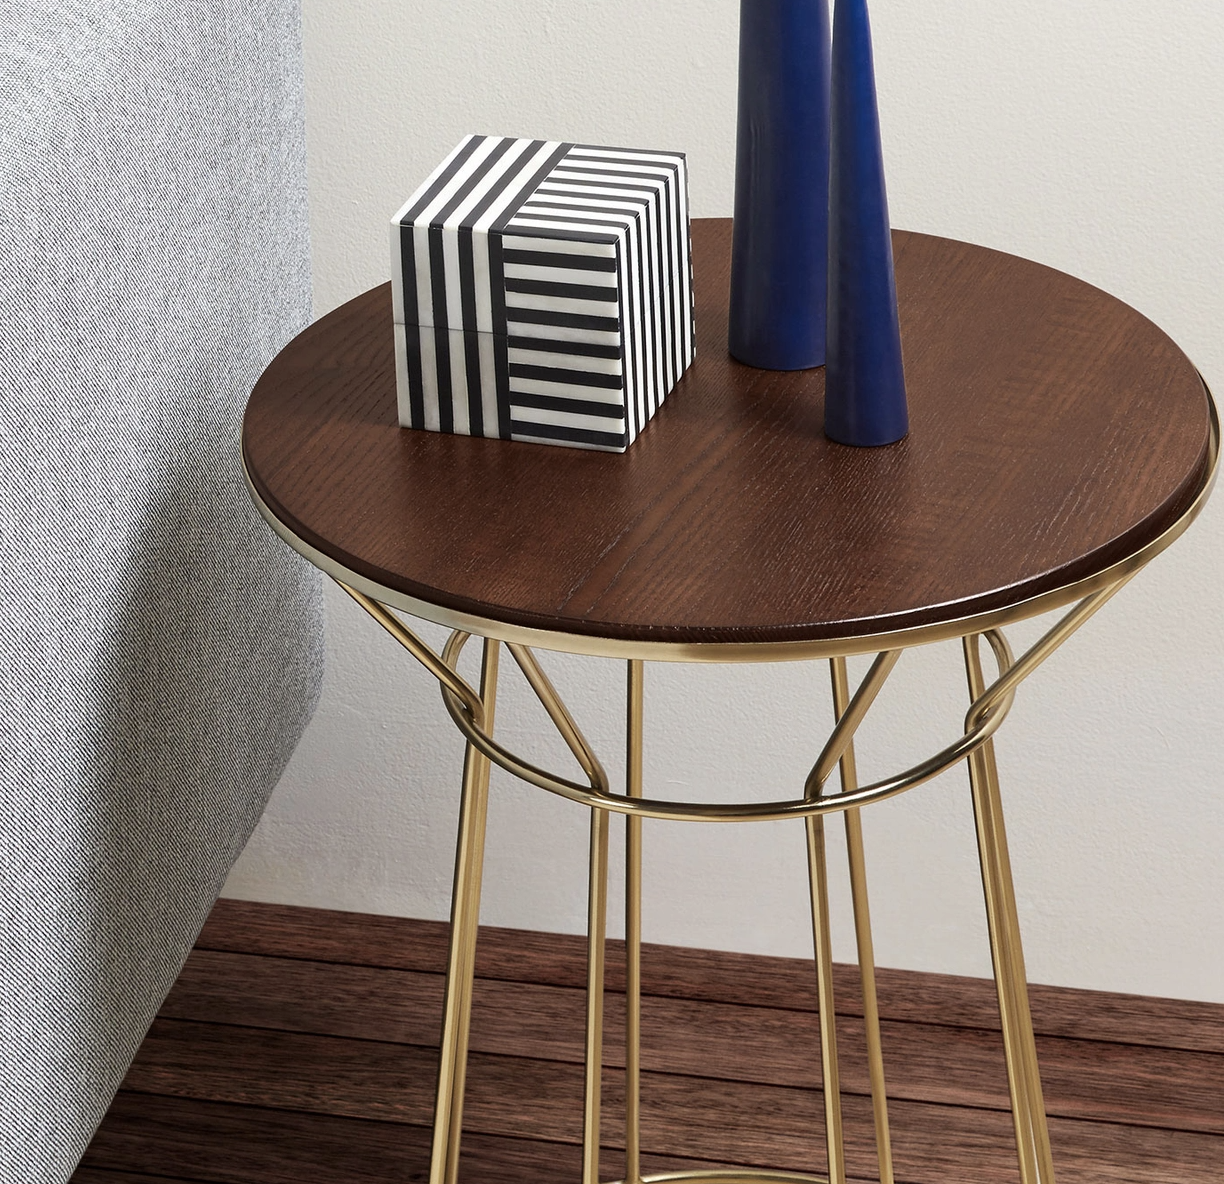 a rounded side table with a wooden top and gold legs